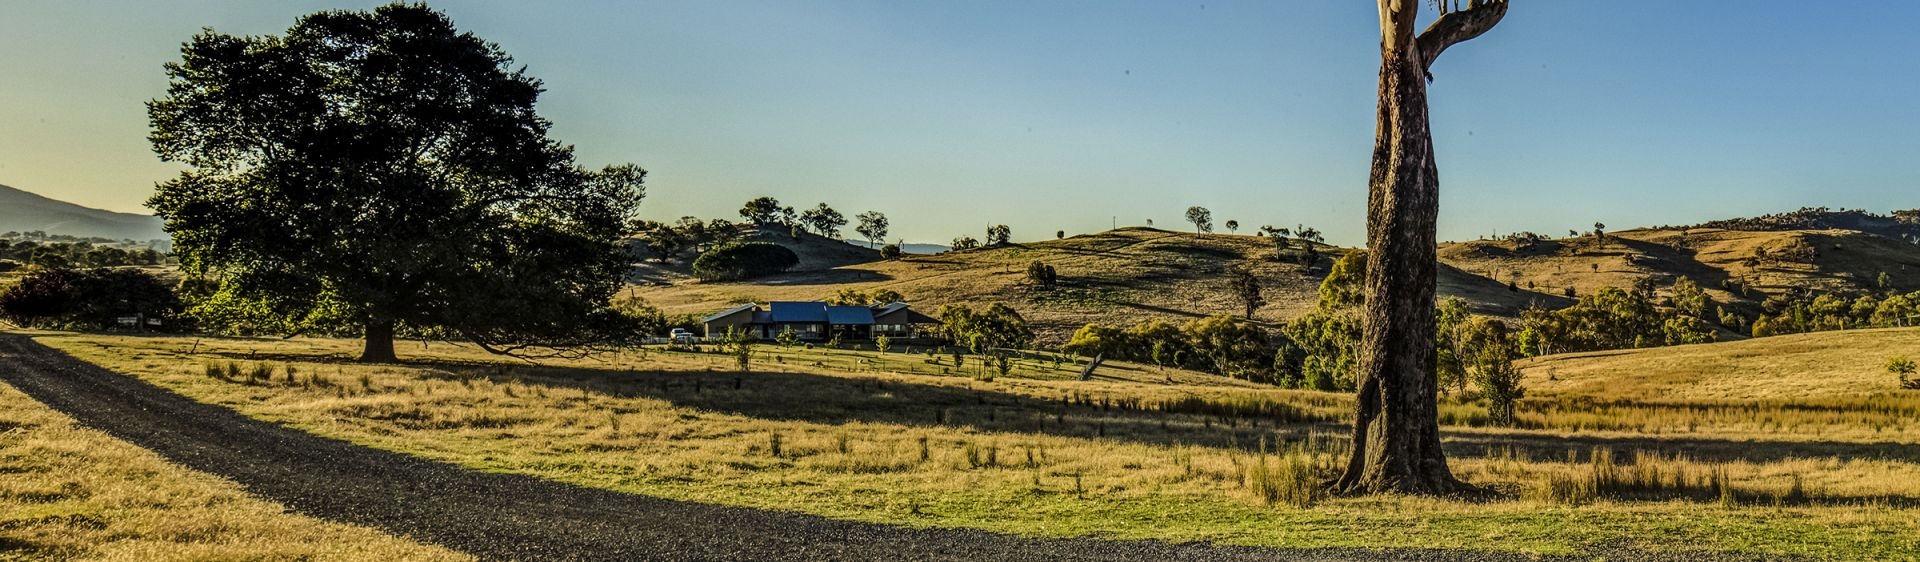 Tumut Area Countryside - Kosciuszko National Park